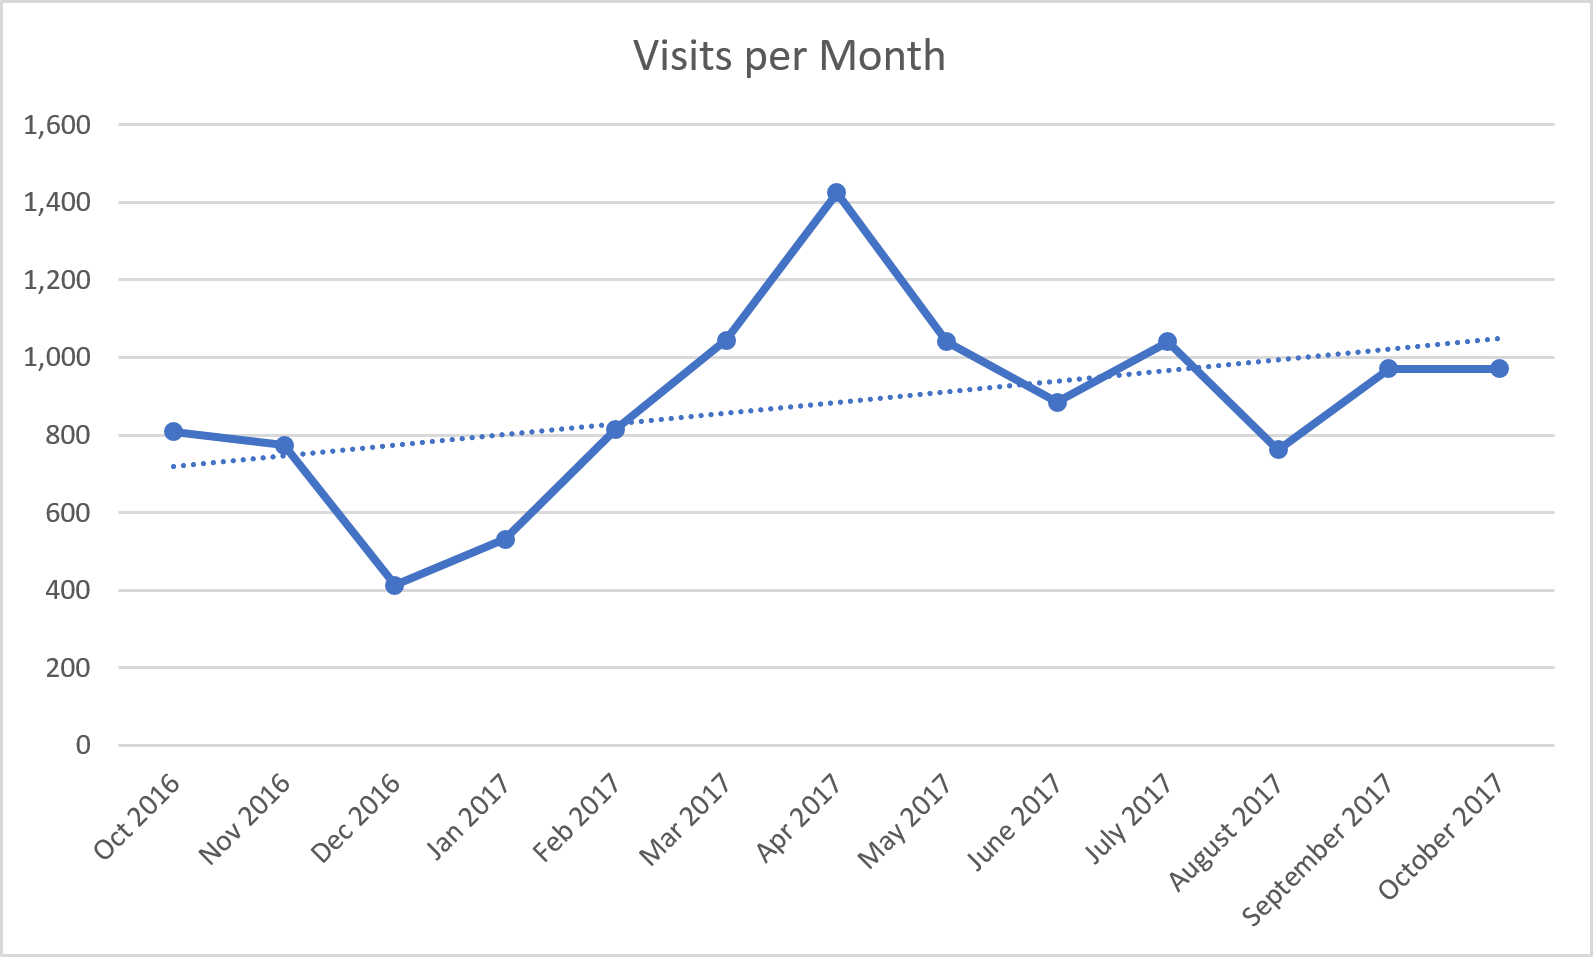 Visits per month